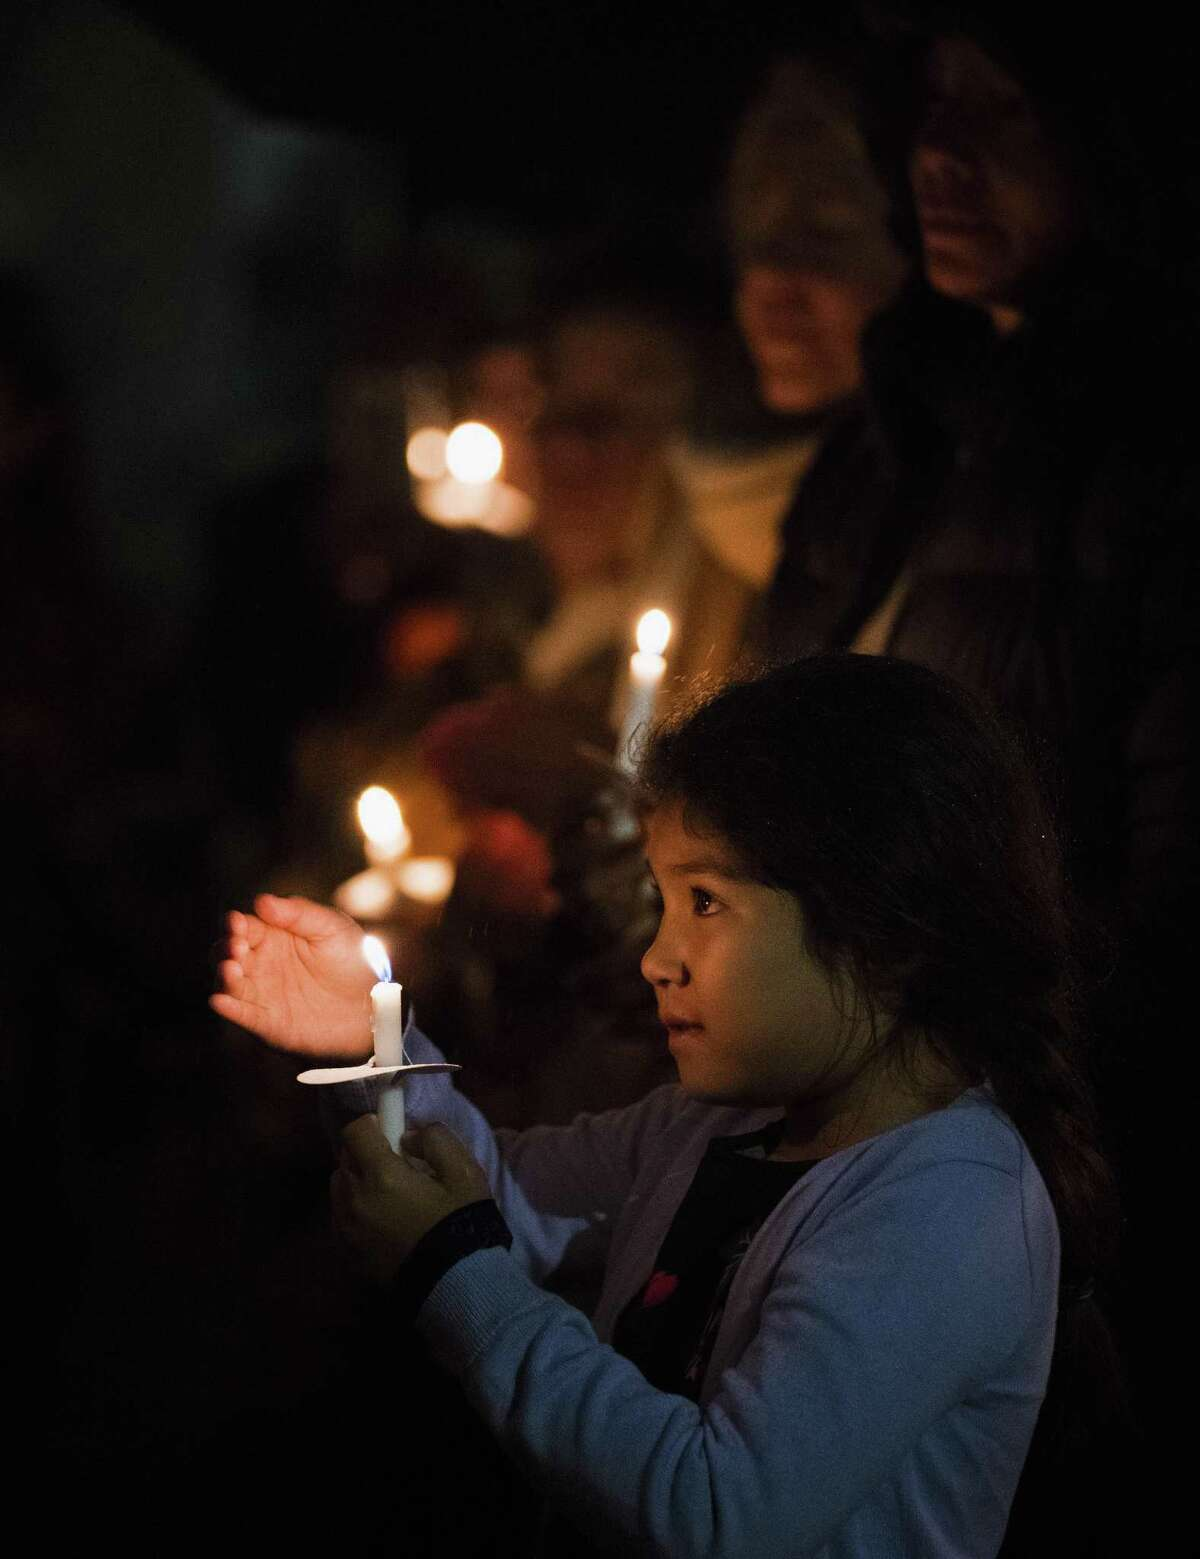 Seven-year-old Alexis holds a candle during a vigil against gun violence Wednesday in downtown San Antonio. The interfaith vigil was held for the 26 churchgoers shot to death Sunday in Sutherland Springs.